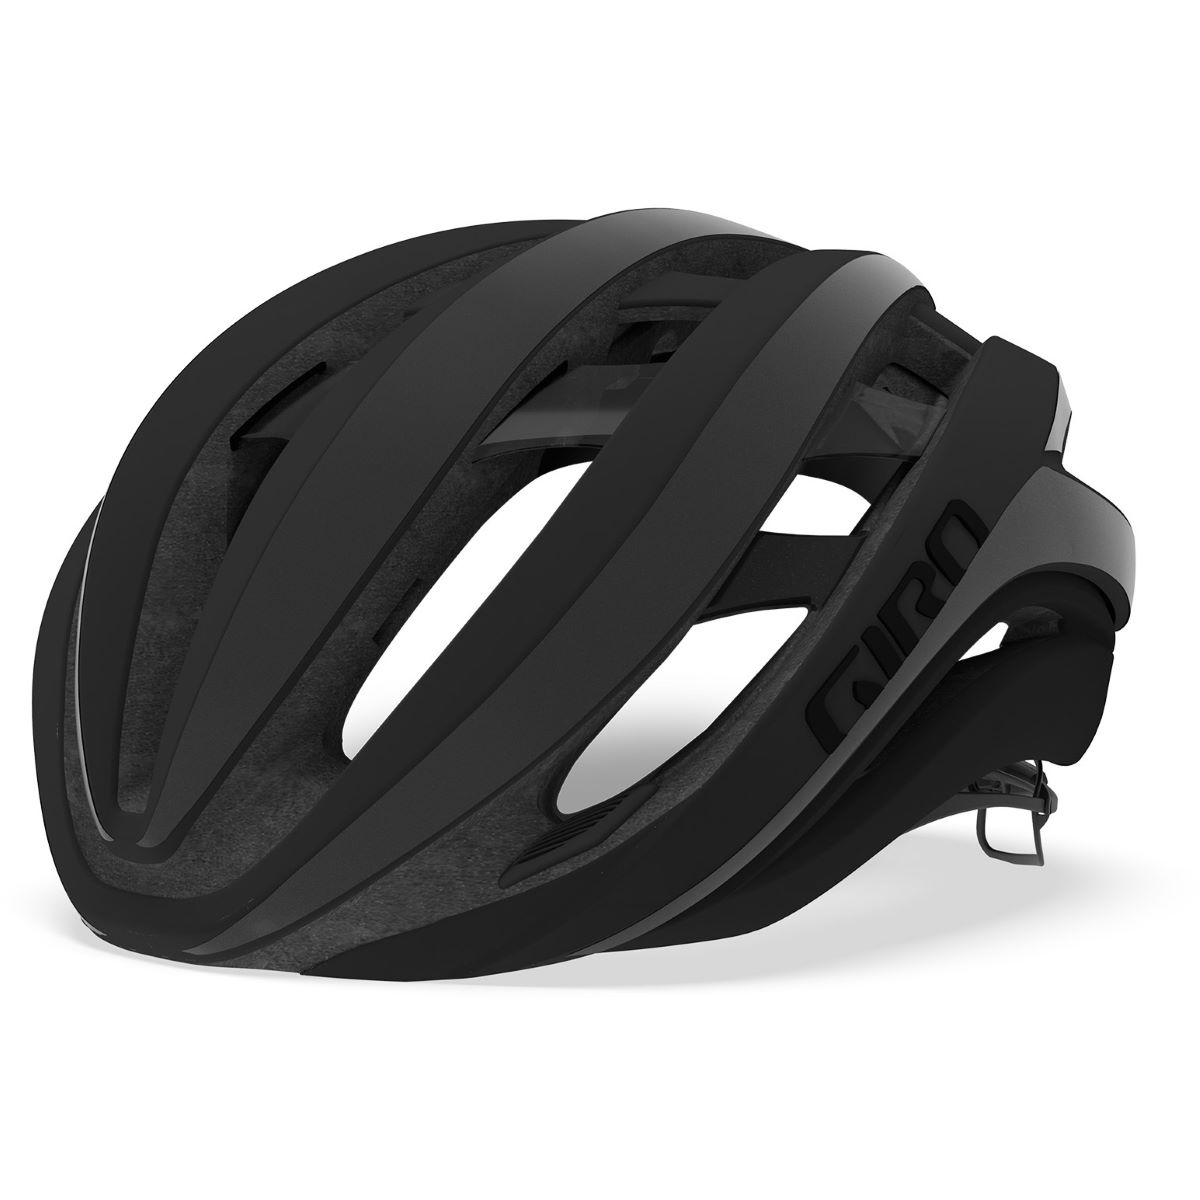 Giro Giro Aether Exclusive Reflective Helmet (MIPS)   Helmets